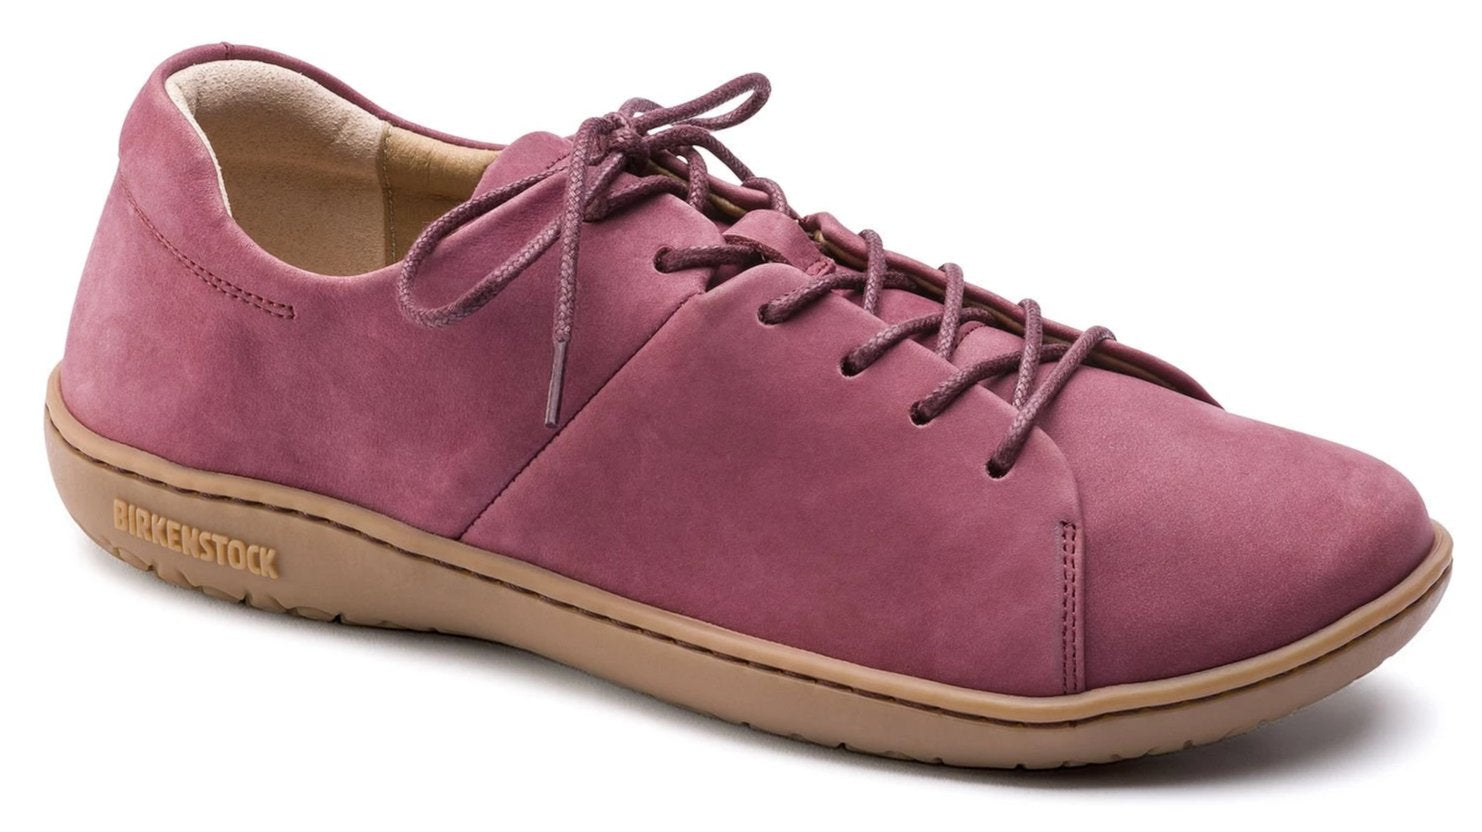 Albany - Wine Nubuck Leather